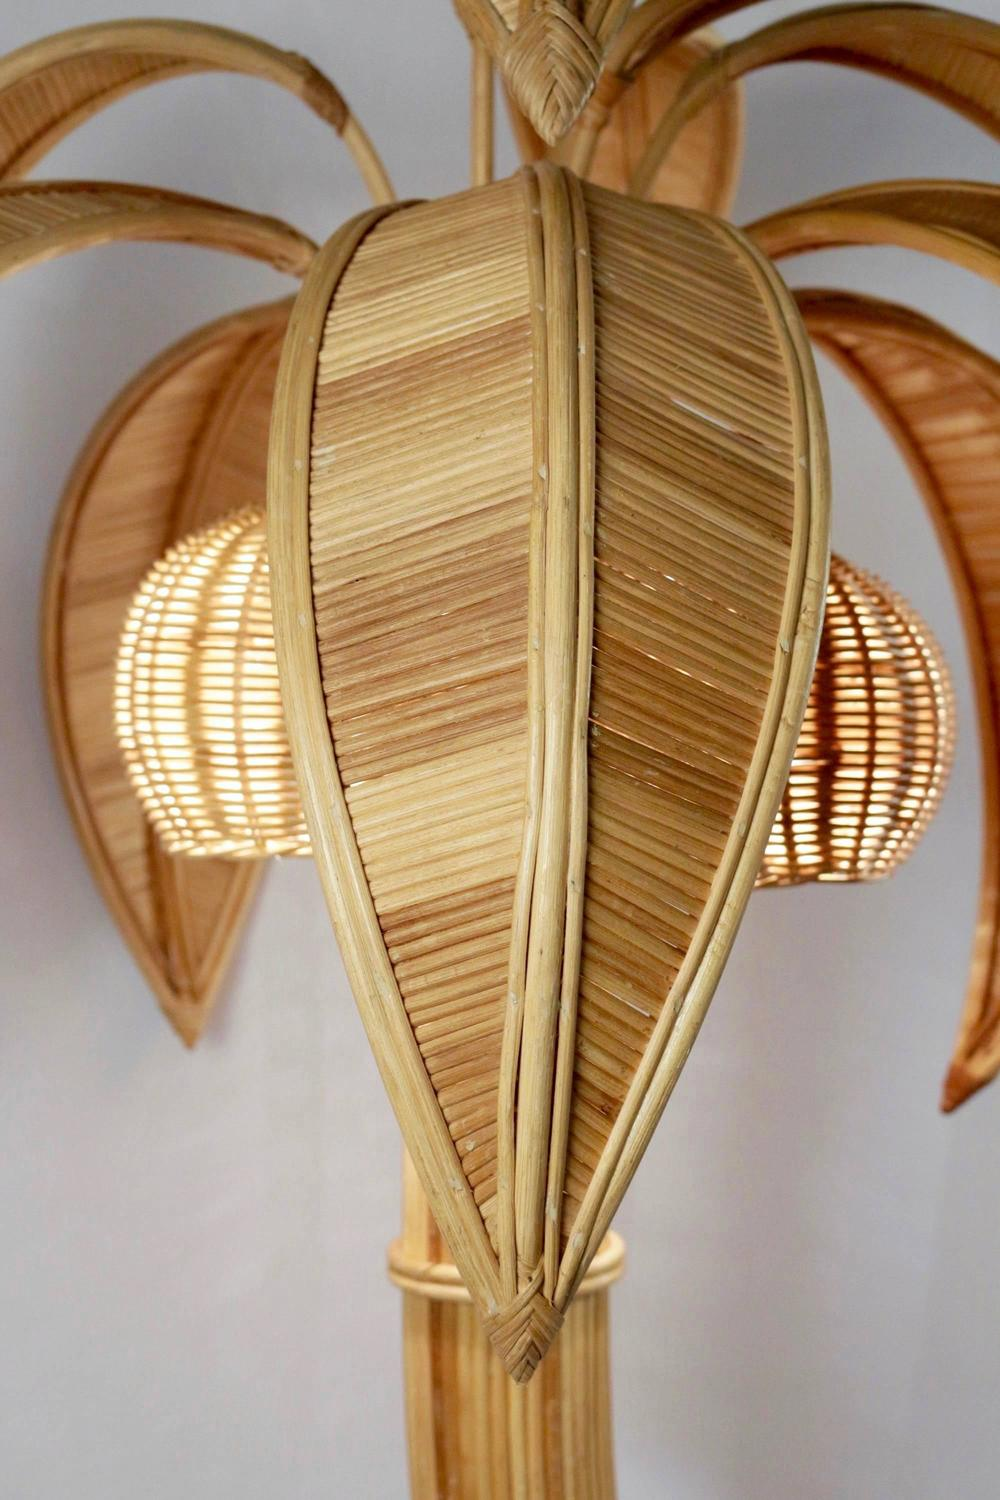 1970s Large Rattan Coconut Tree Floor Lamp At 1stdibs